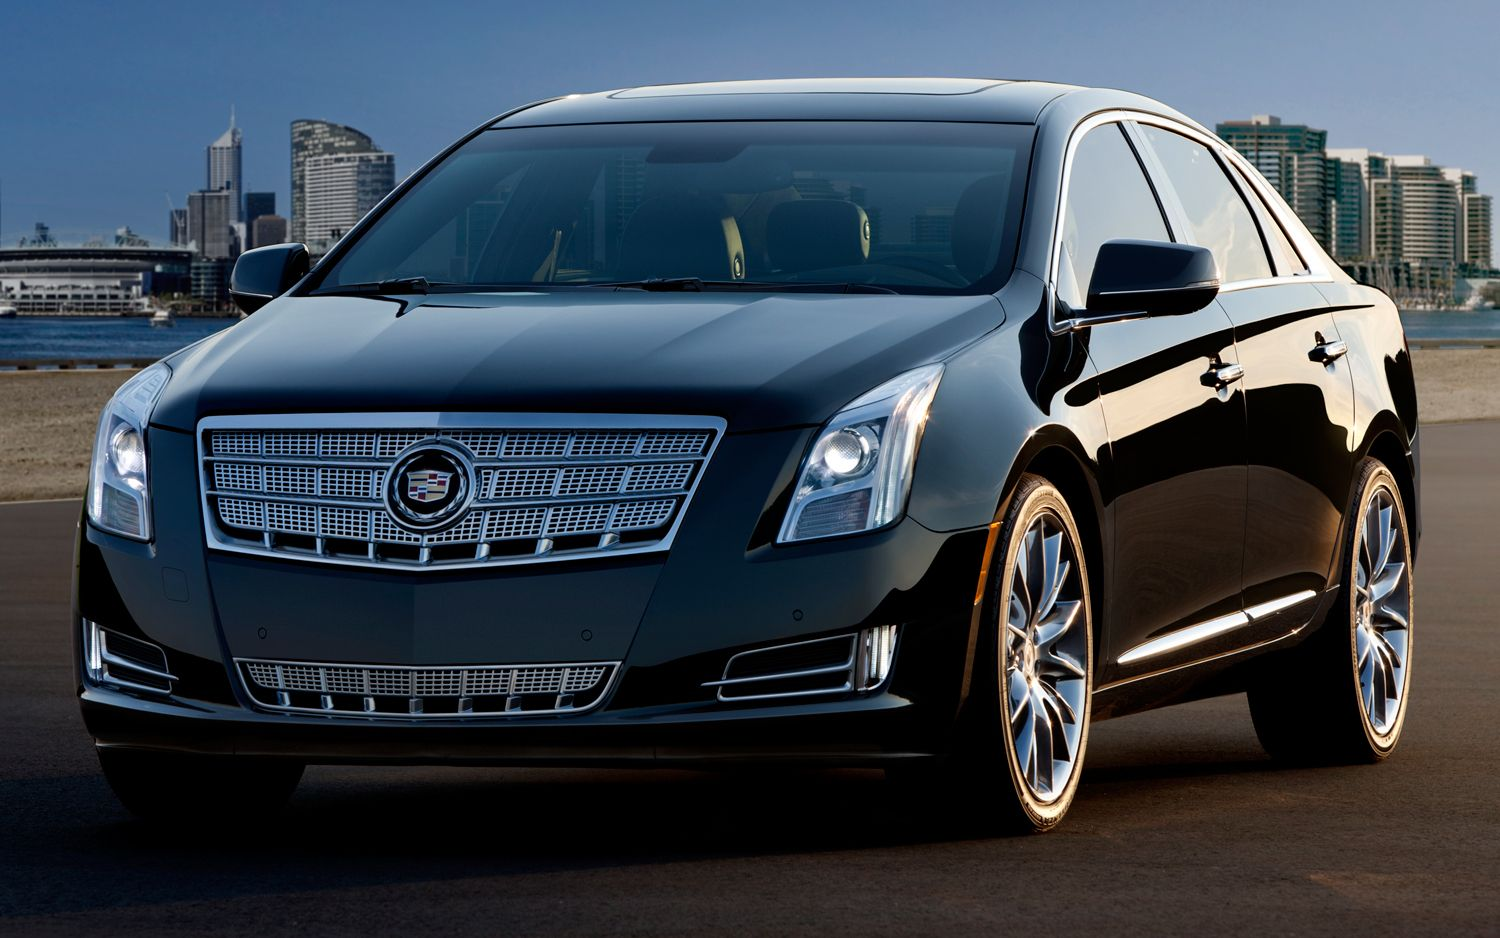 car barn sport cadillac xts 2013. Black Bedroom Furniture Sets. Home Design Ideas